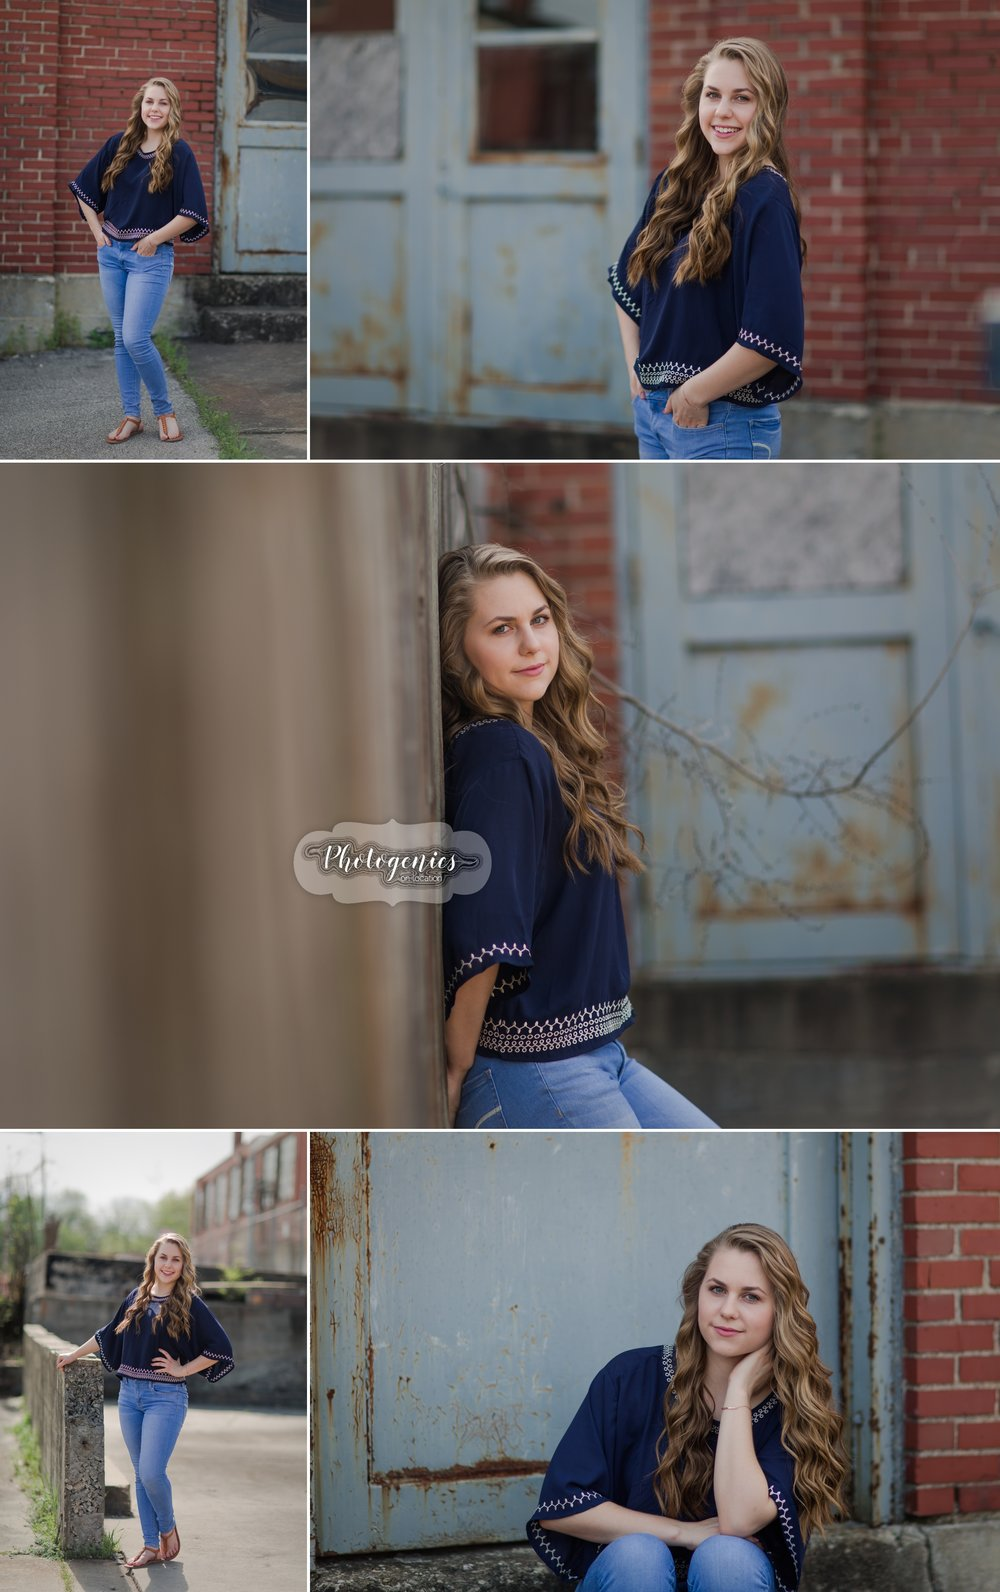 senior_girl_urban_photography_poses_small_town_ideas_missouri_outdoor_cafe_unique_morning_pretty_lighting_posing_outfit_what_to_wear_navy